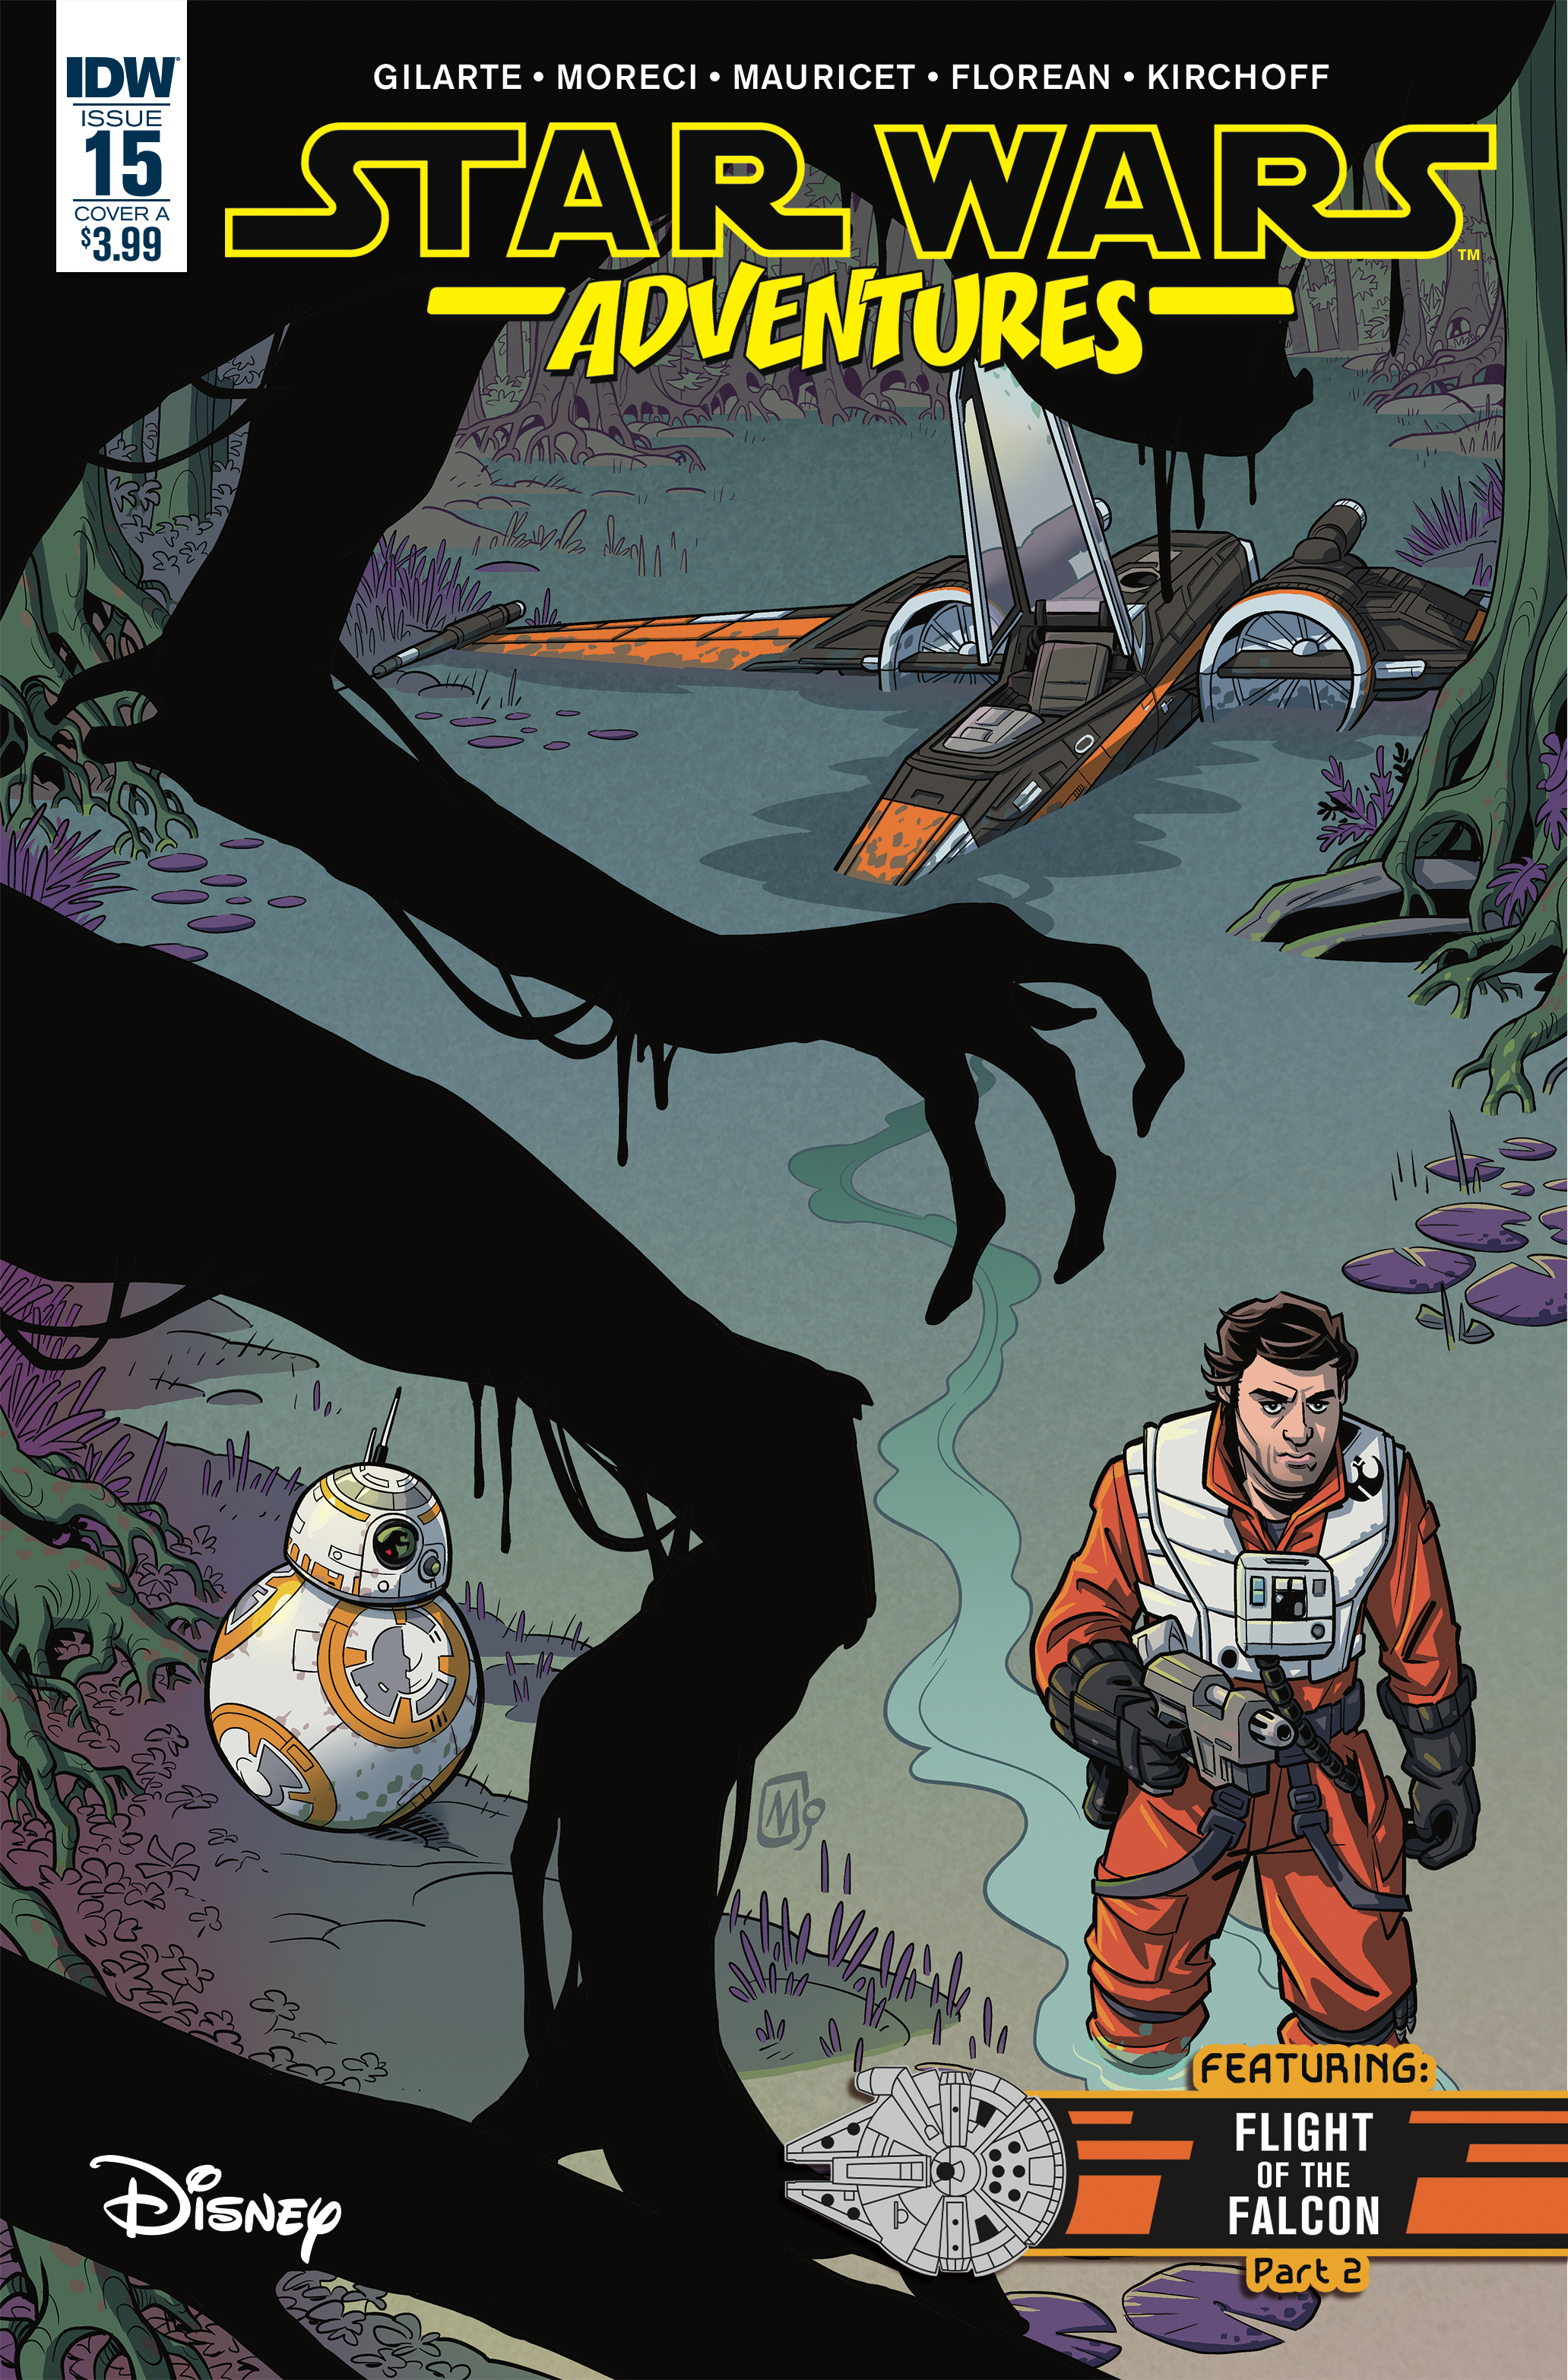 STAR WARS ADVENTURES #15 CVR A MAURICET